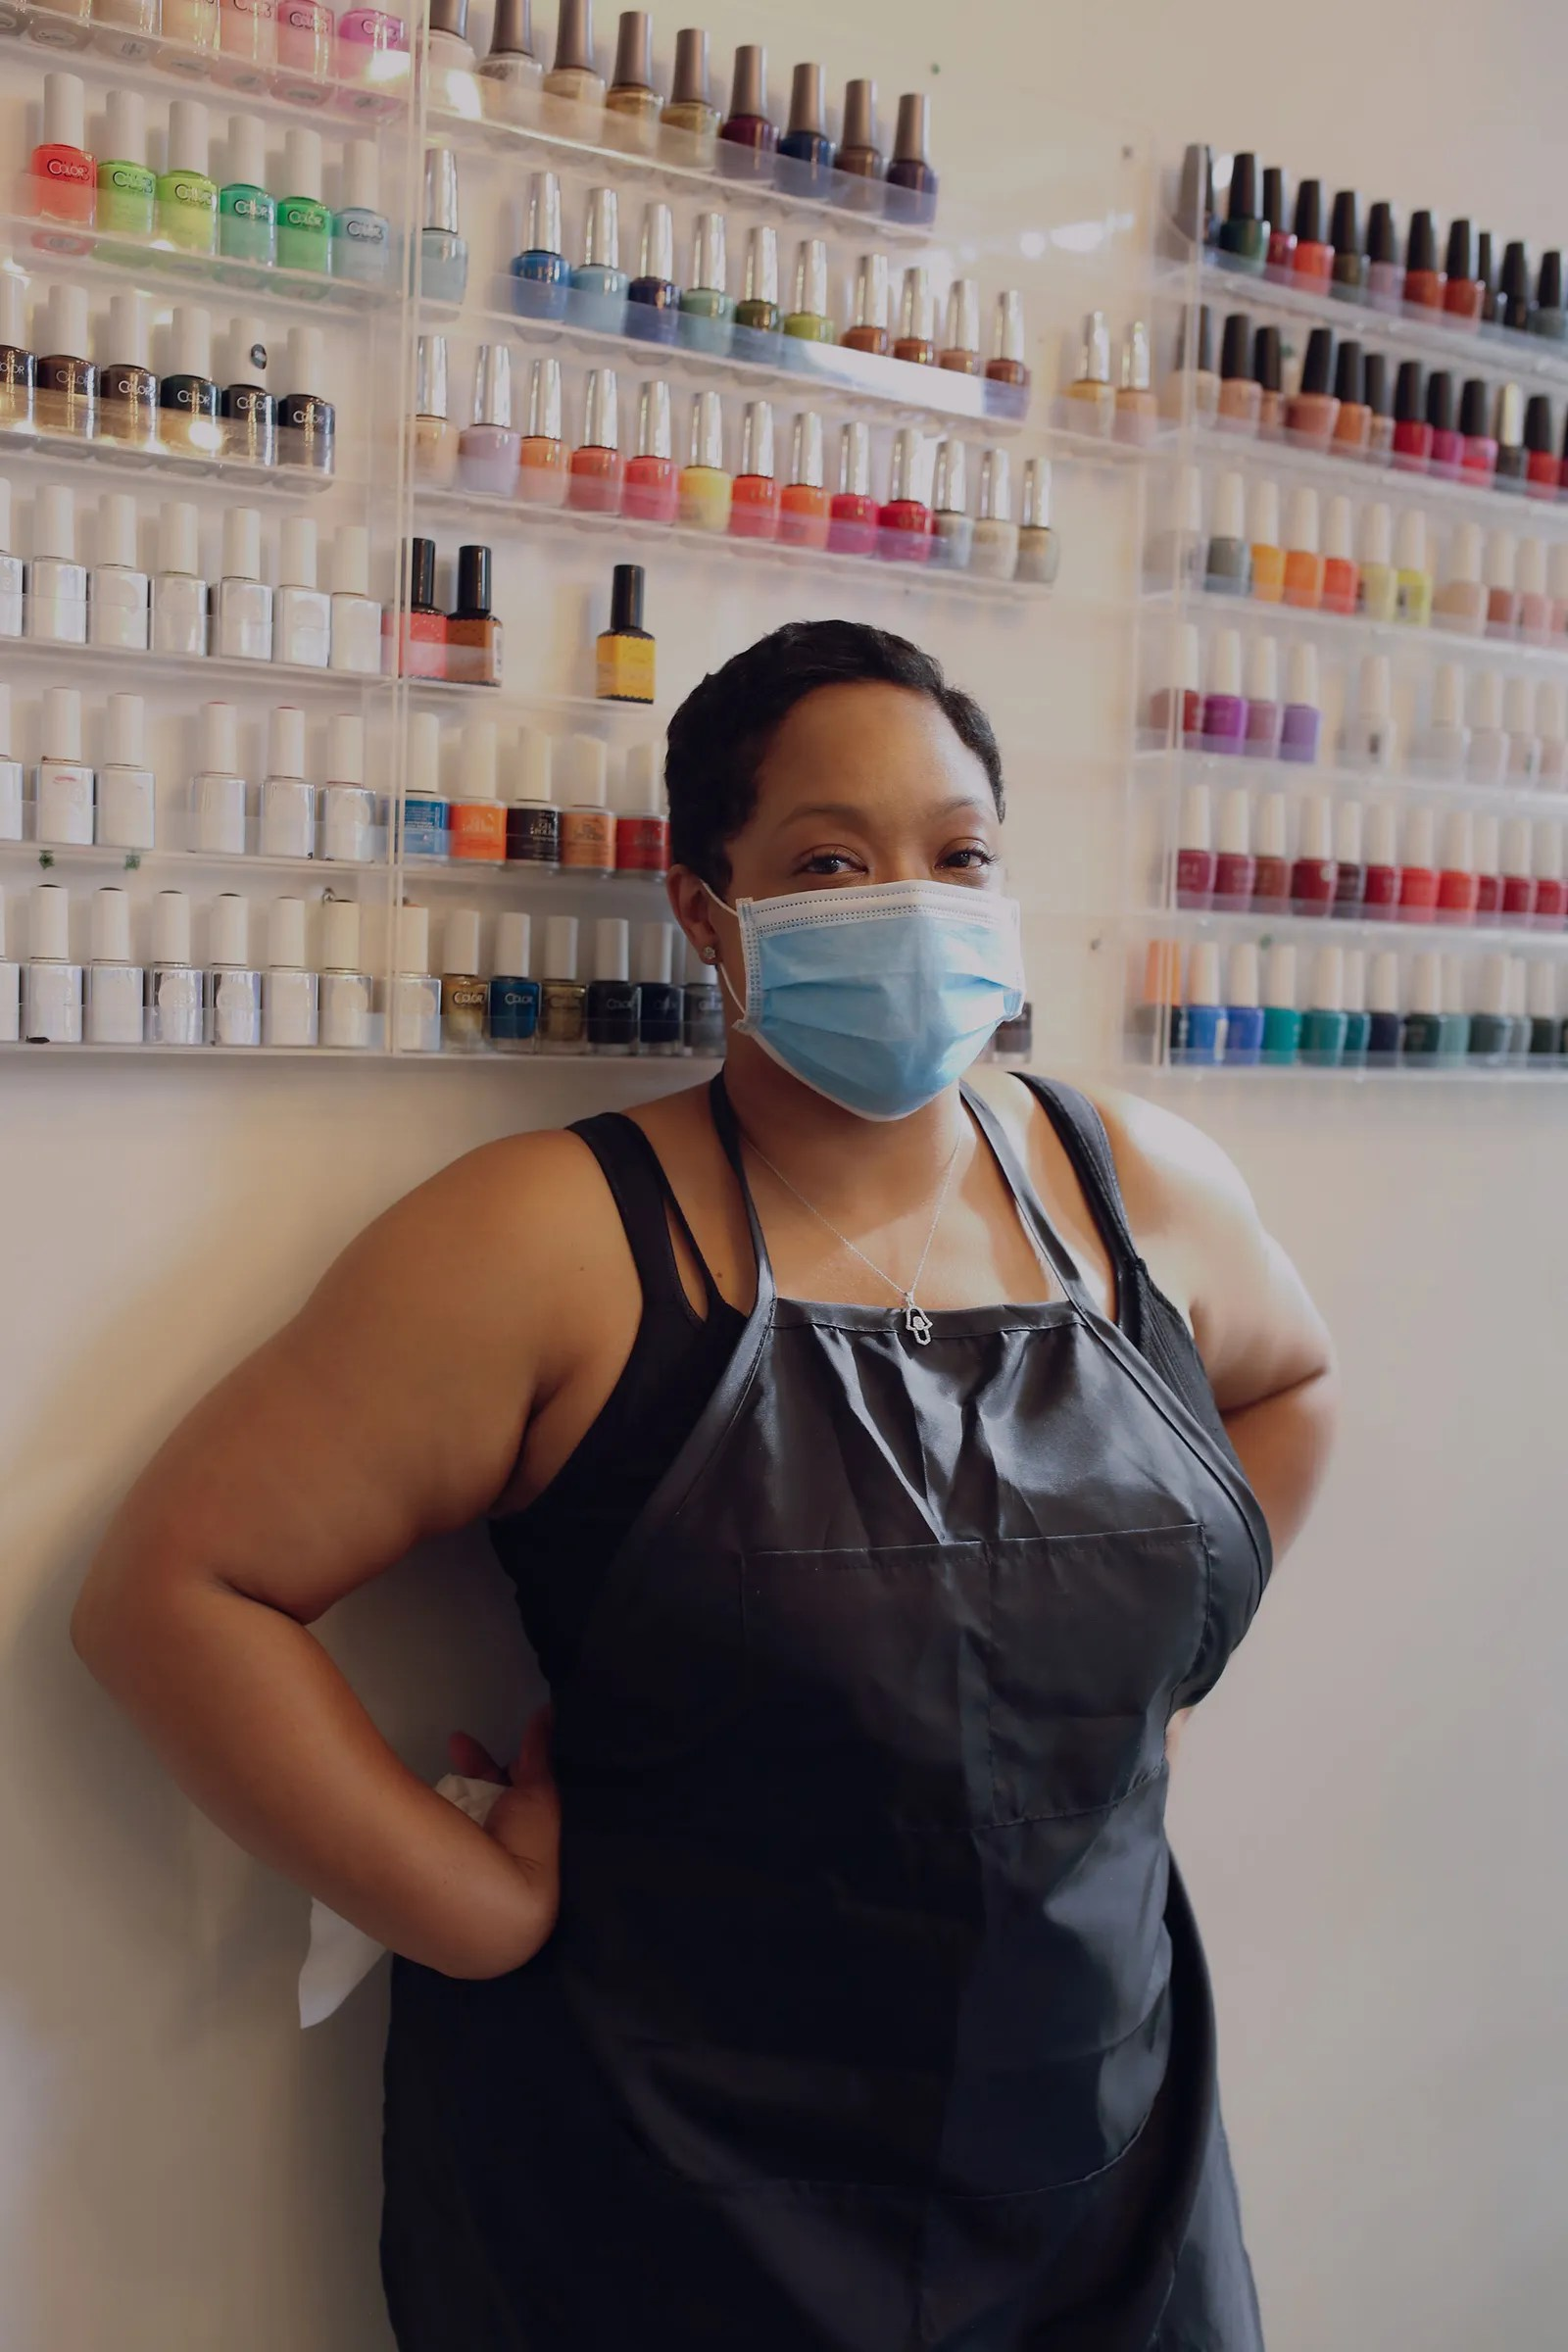 Black Owned Nail Salons Near Me : black, owned, salons, Reopening, Black-Owned, Salon, Brooklyn, During, Pandemic, Interview,, Photos, Allure